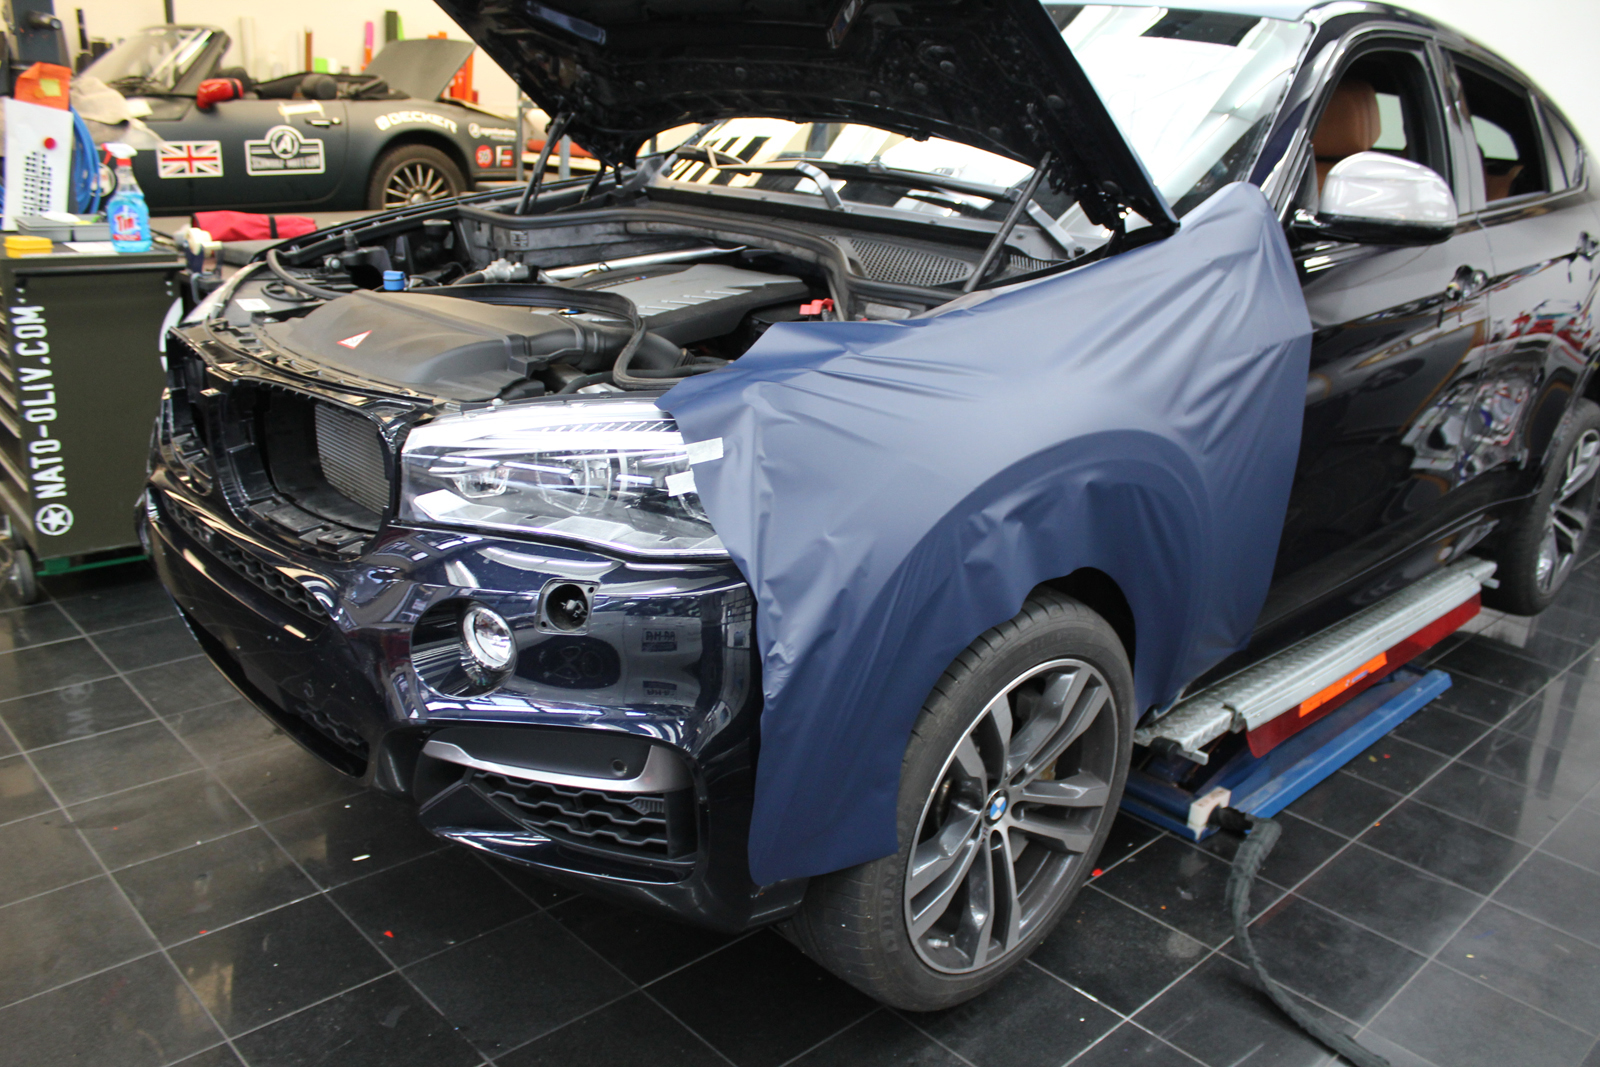 BMW_X6_CAR-WRAPPING_YACHTBLAU_MATT_01